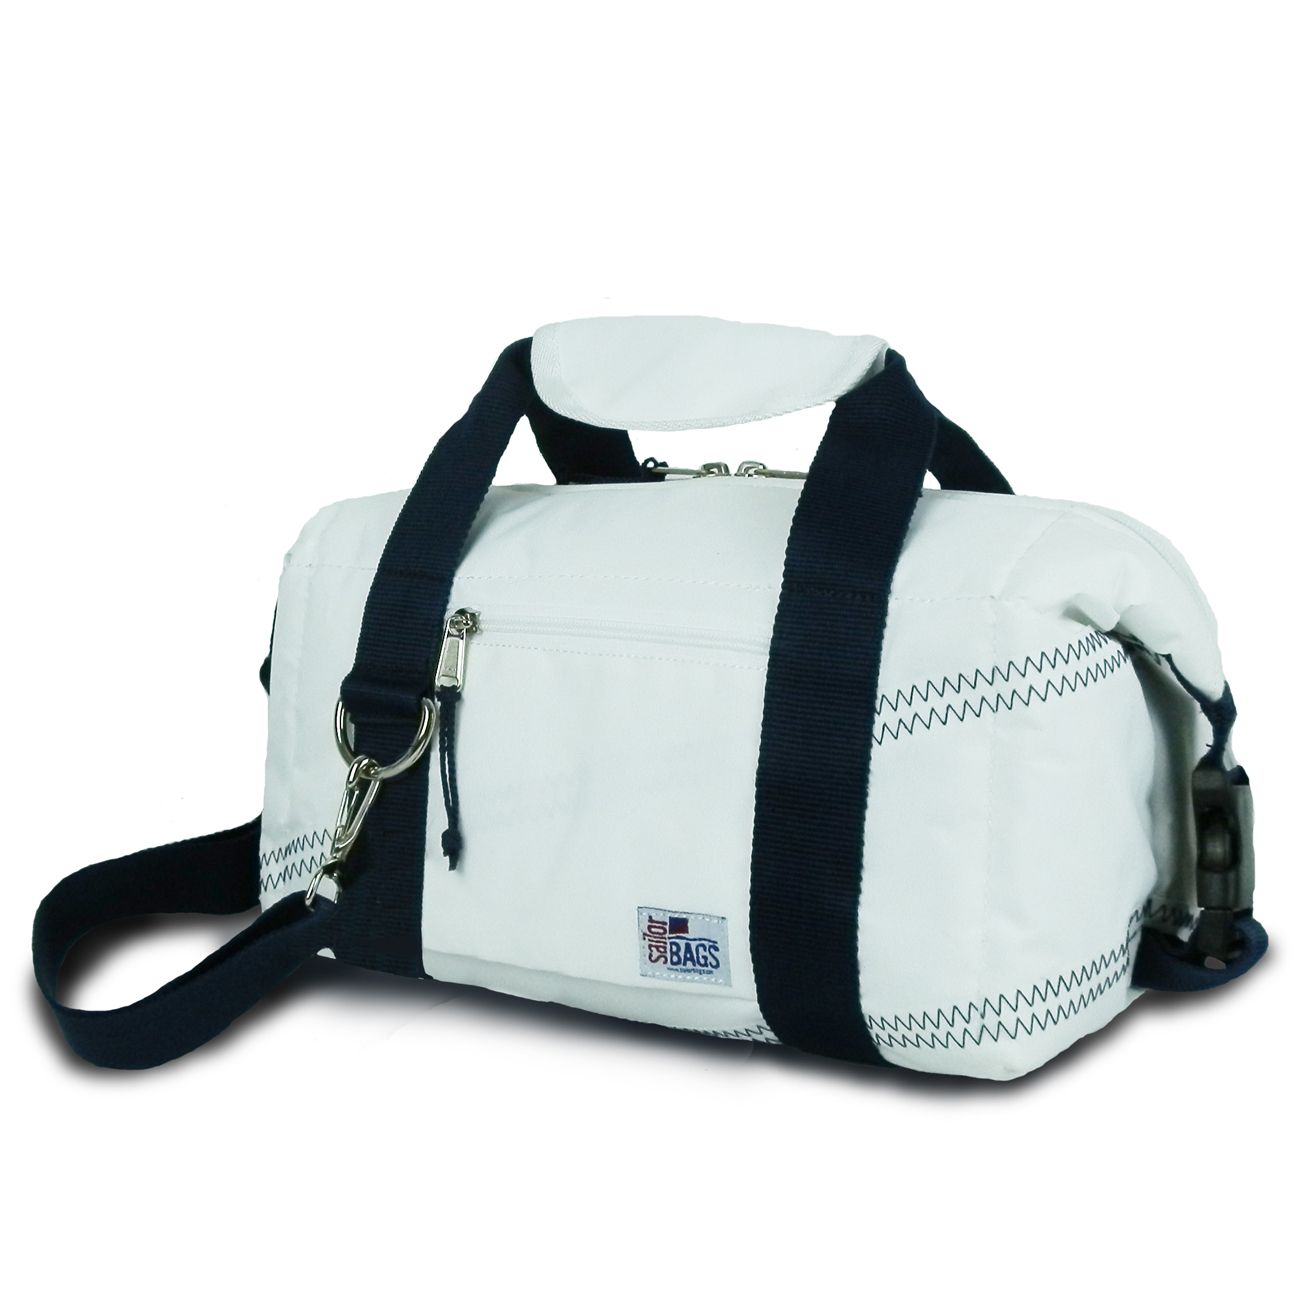 Soft sided cooler, beach cooler, insulated cooler bag, large lunch bag lunch bag